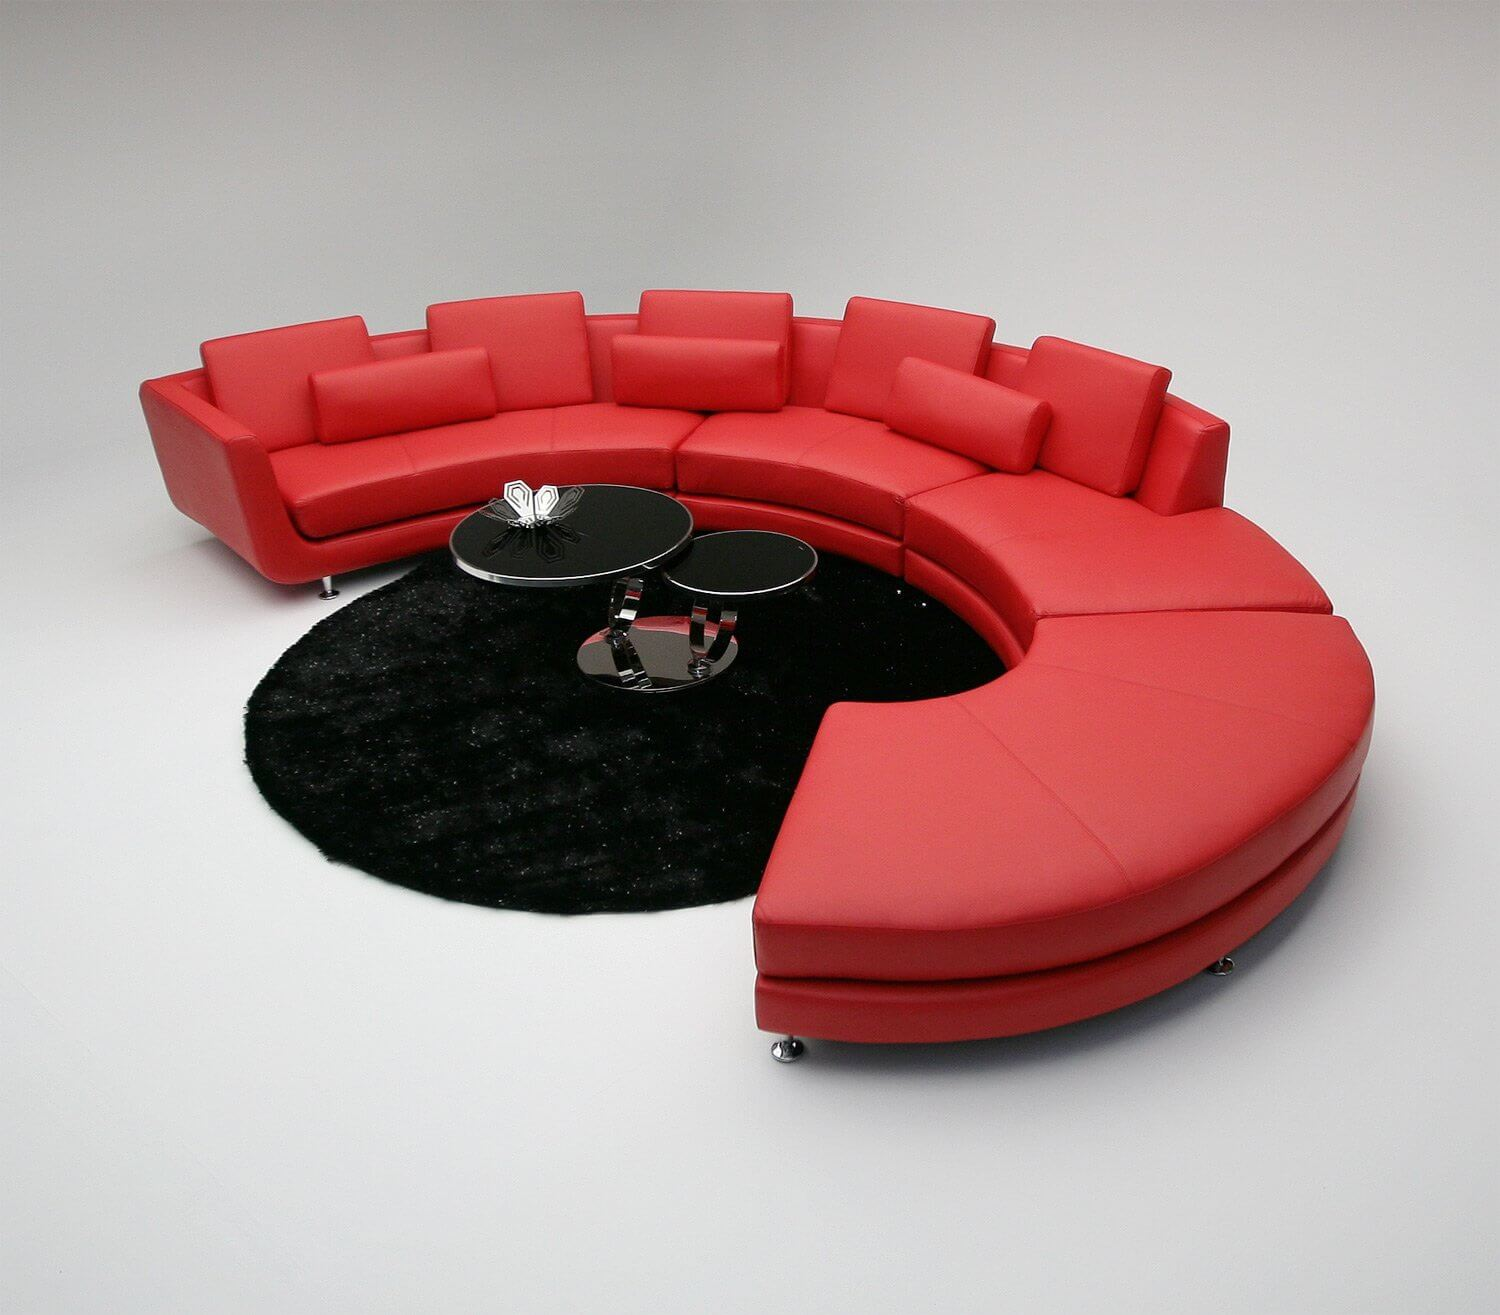 For those of you who like the round/curved sectional styles, this one is for you. It definitely makes a statement. While round sofas aren't always a good fit in a square or rectangle room, if you have a large great room, this sofa will work in the middle of the space.